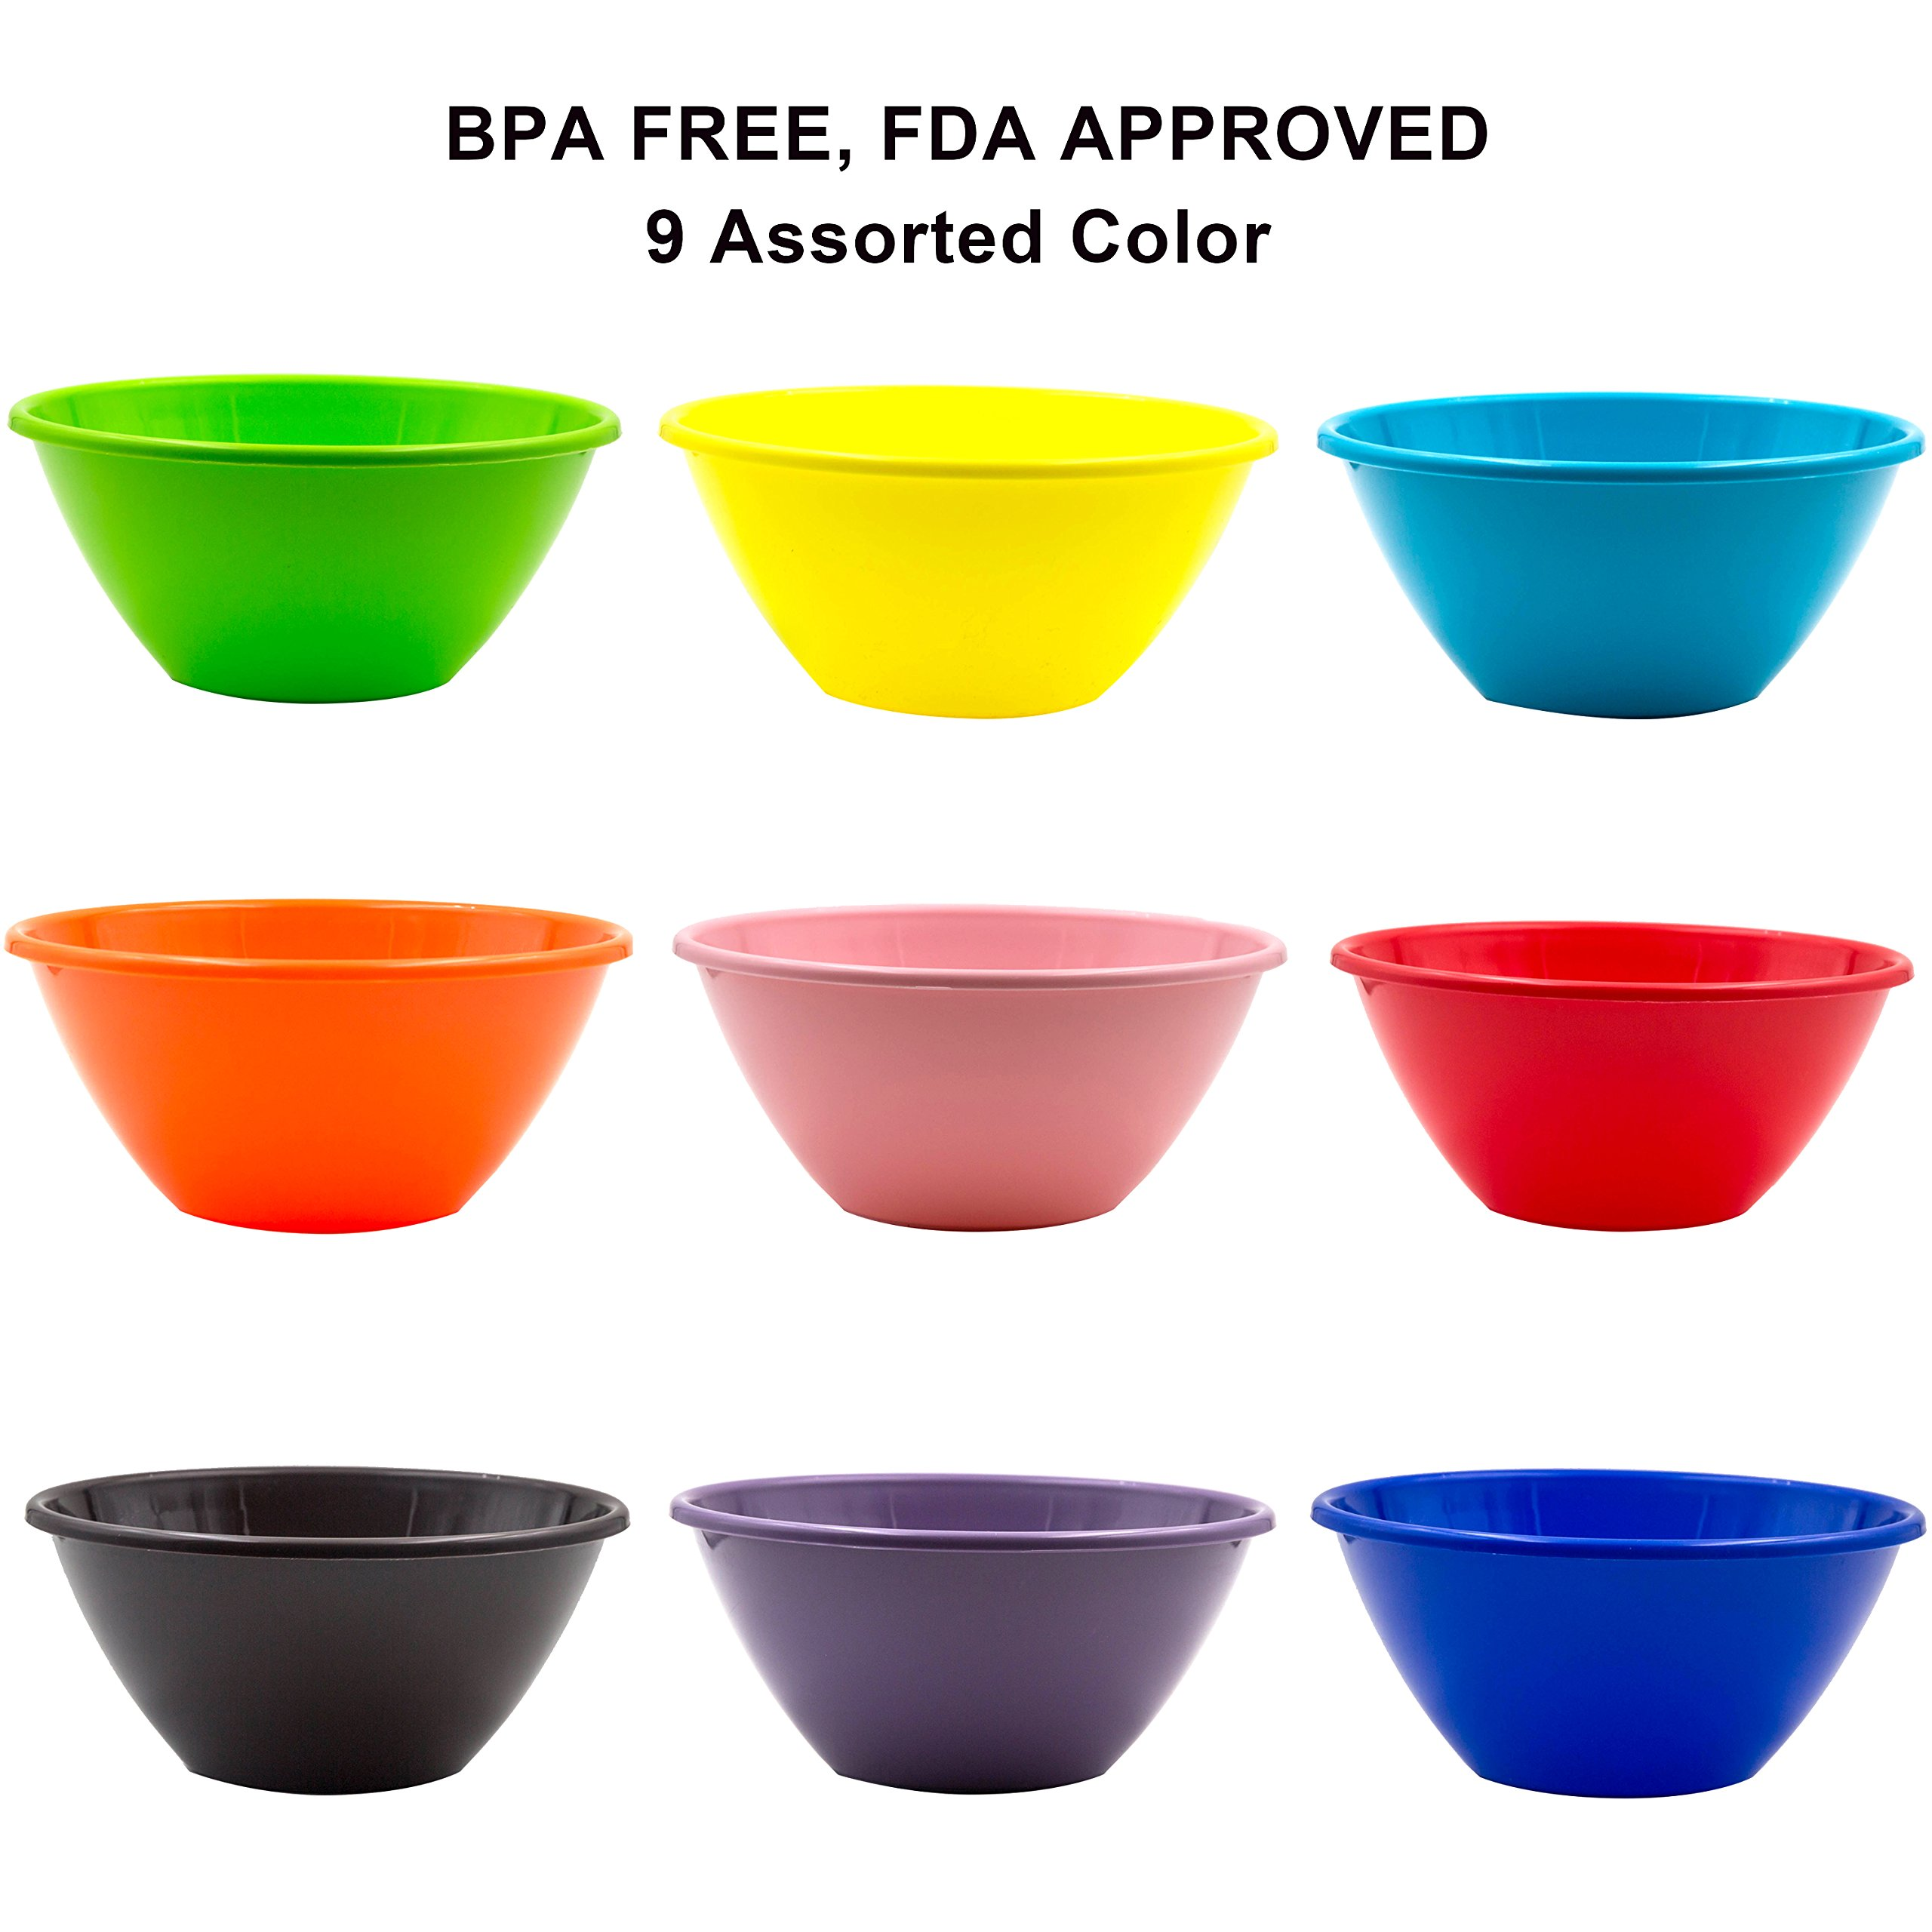 Youngever 32 ounce Plastic Bowls, Large Cereal Bowls, Large Soup Bowls, Microwave Safe, Dishwasher Safe, Set of 9 in 9 Assorted Colors by Youngever (Image #2)